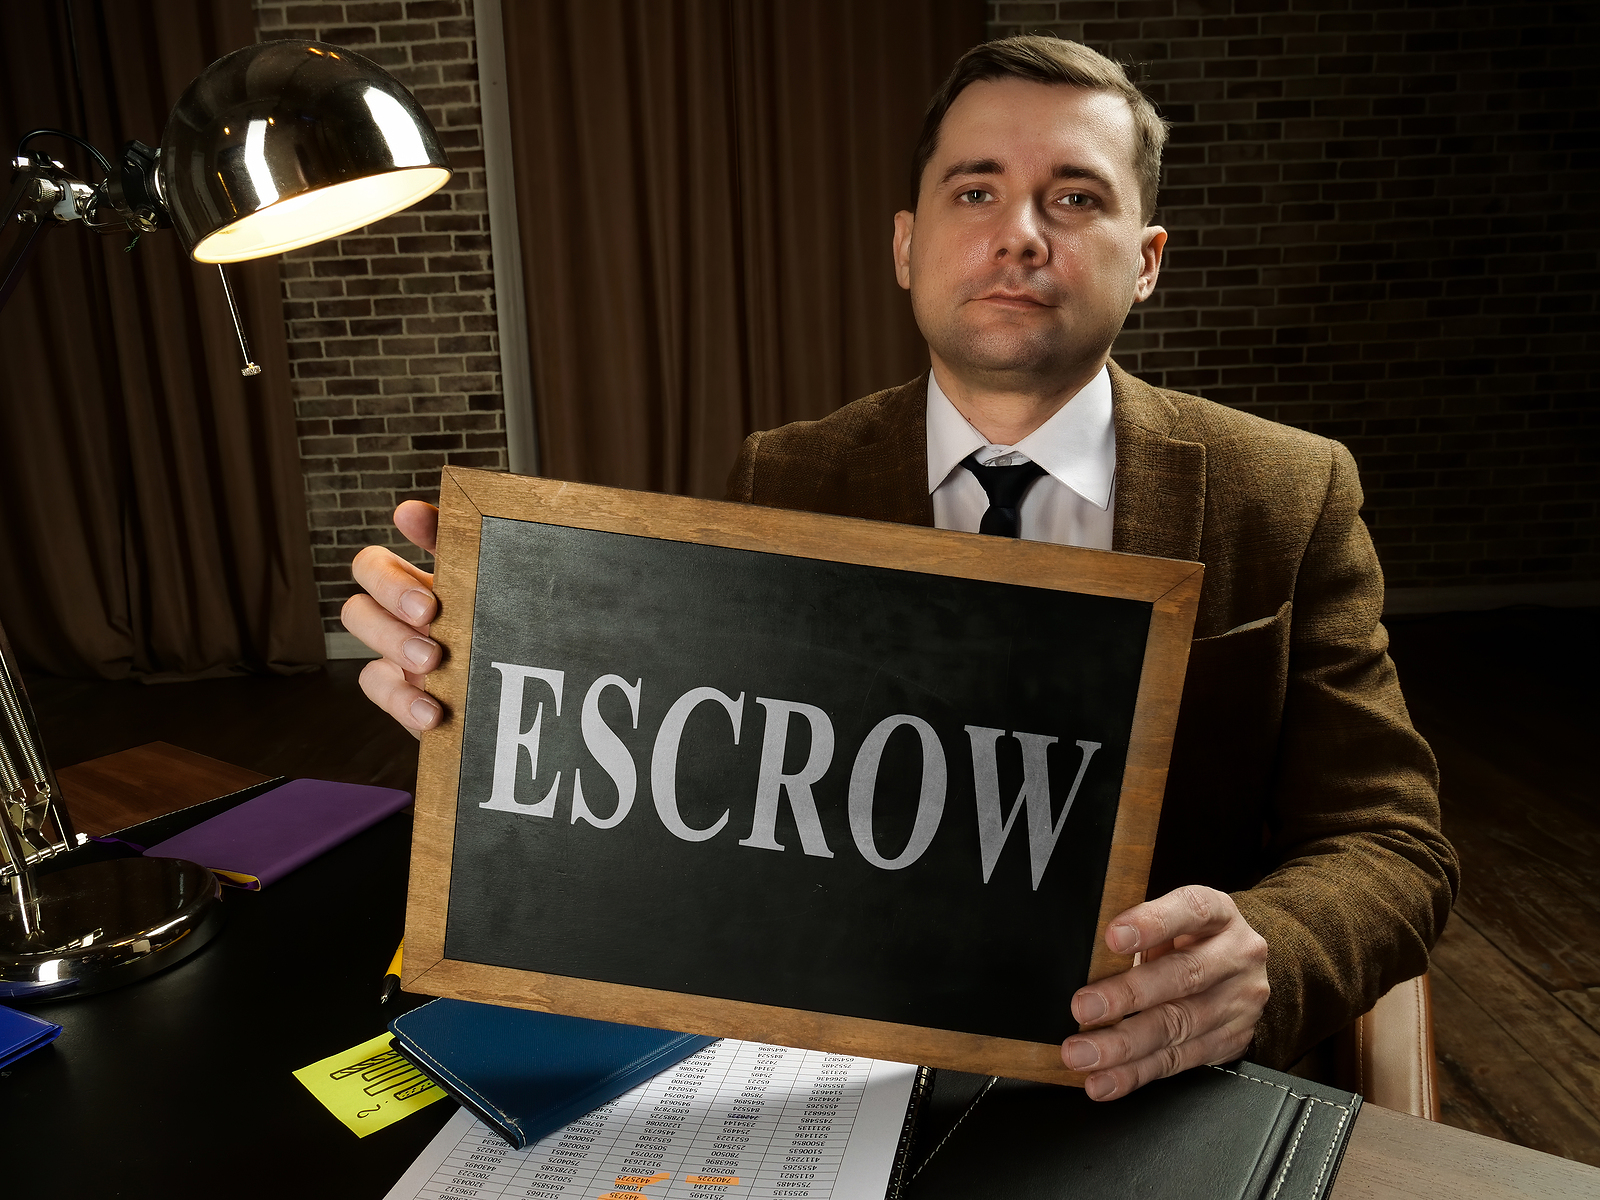 explain the escrow and title processes